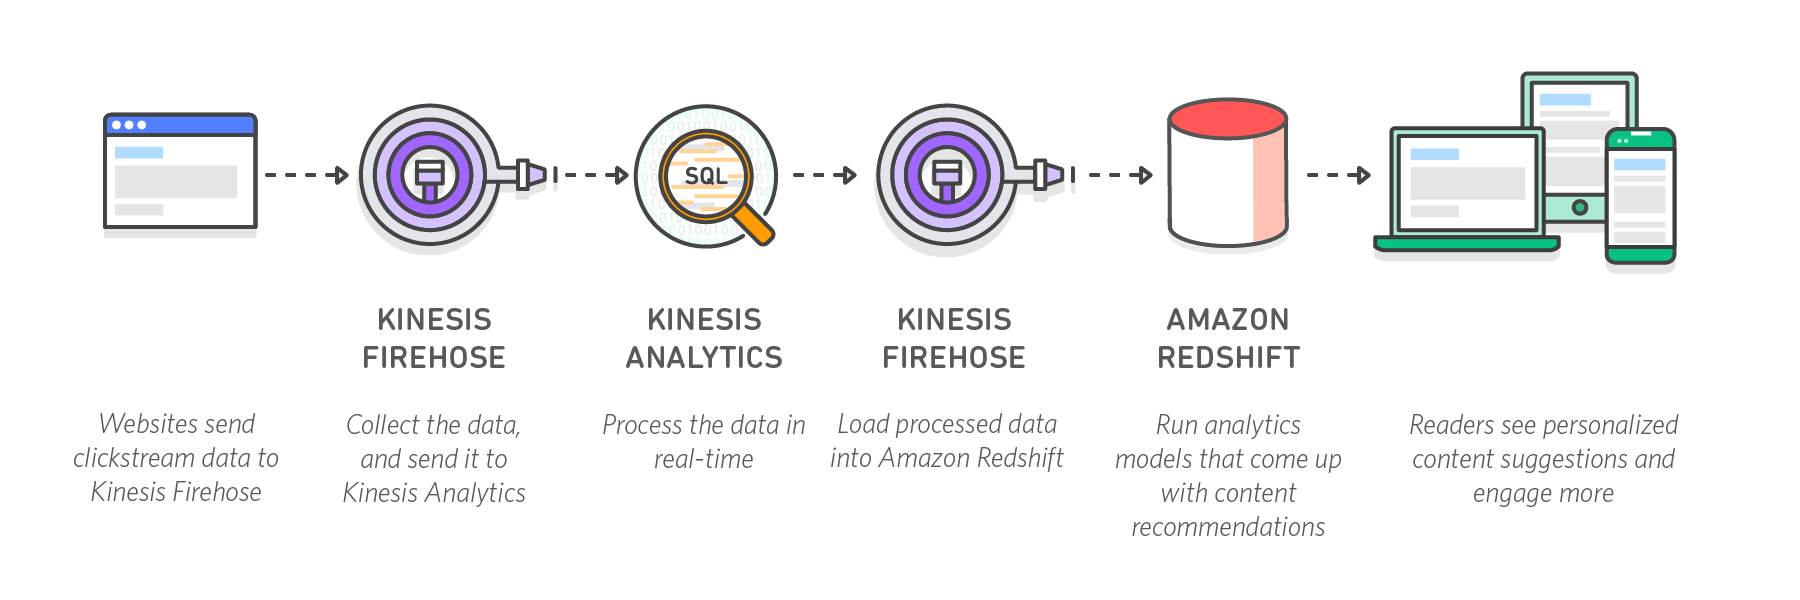 diagram-kinesis-architecture-clickstream-analytics-may16